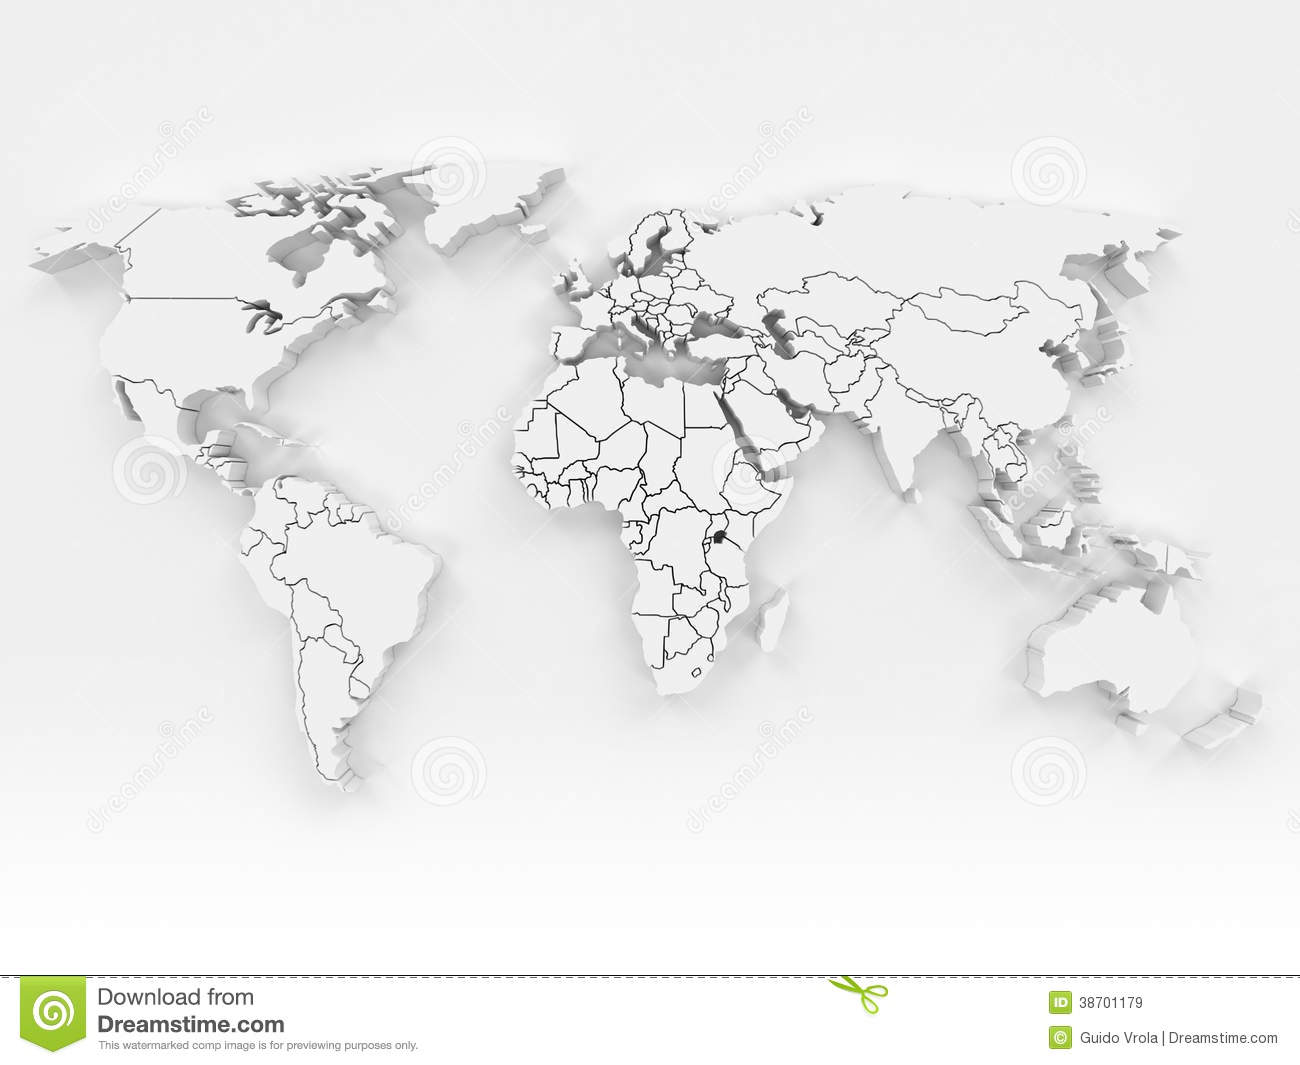 World map high resolution gidiyedformapolitica world map high resolution gumiabroncs Choice Image